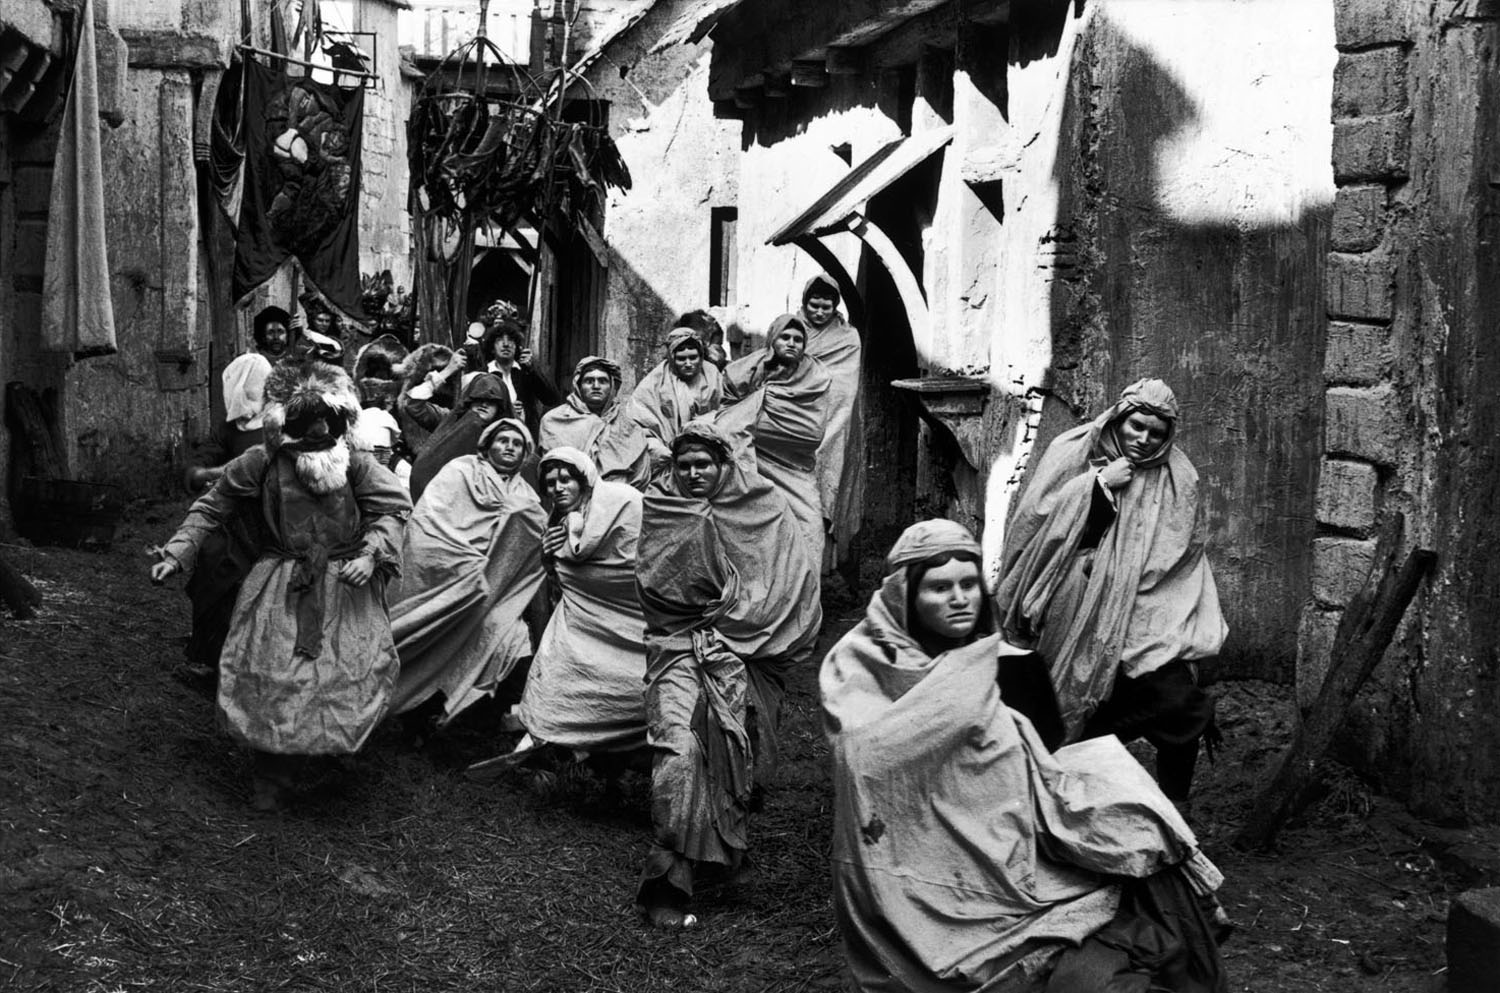 Representation of the carnival, 1977.